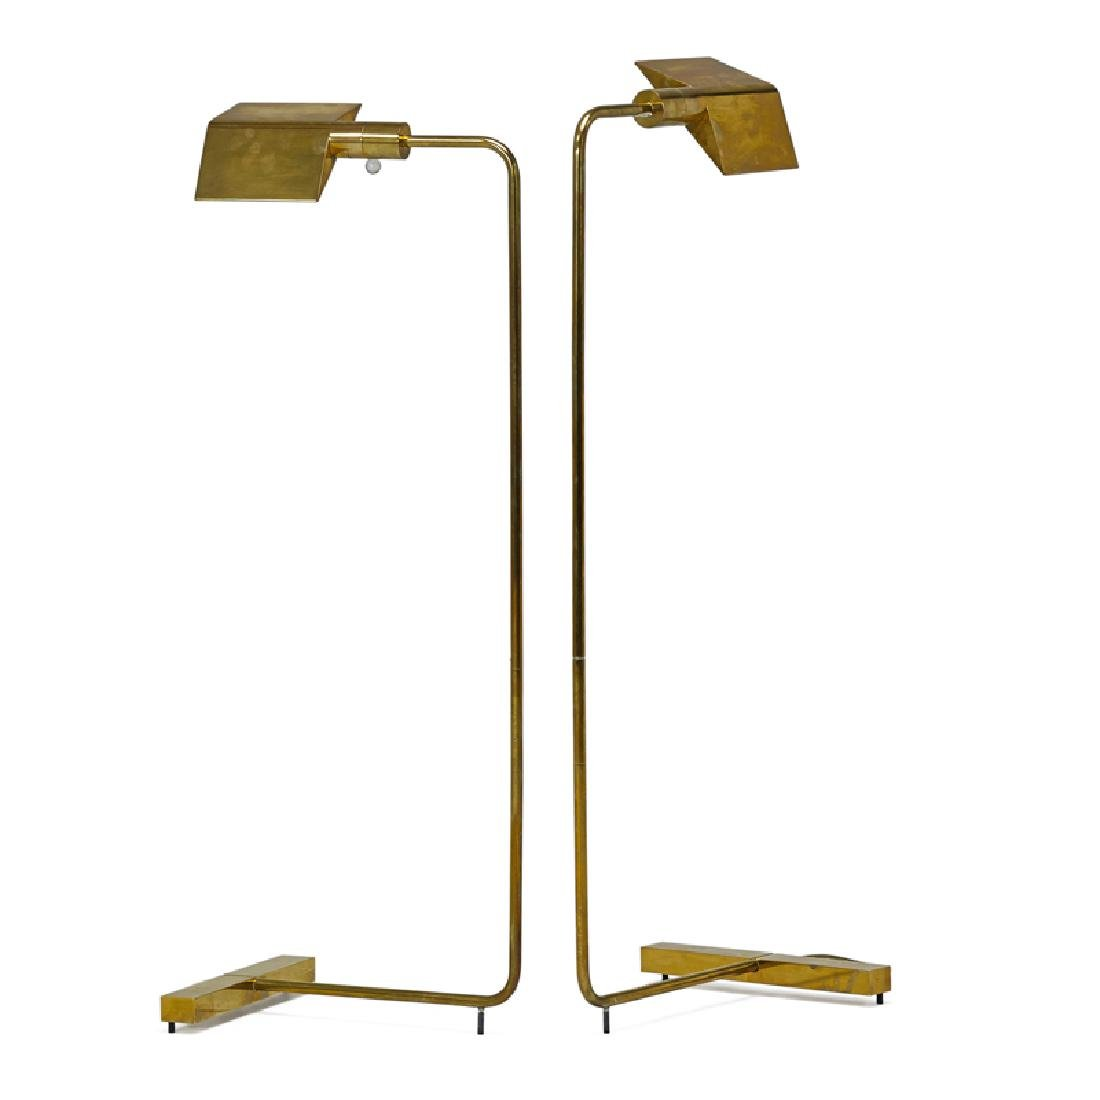 CEDRIC HARTMAN Pair of floor lamps